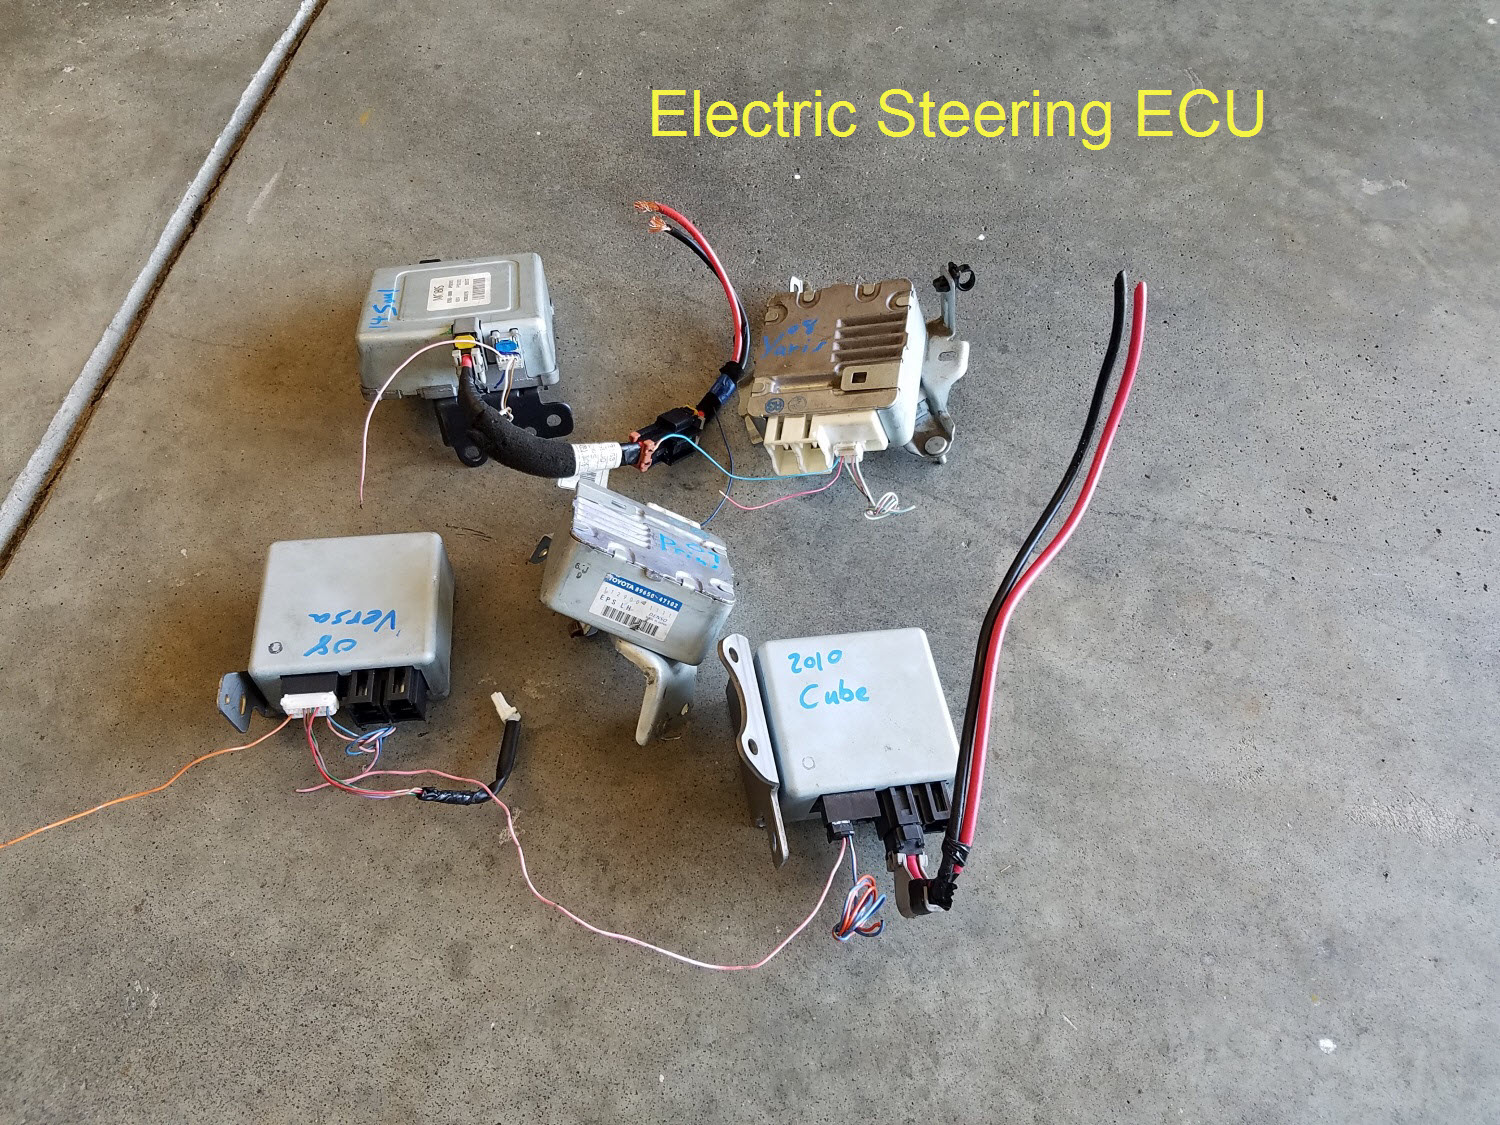 35 electric power steering with fail-safe